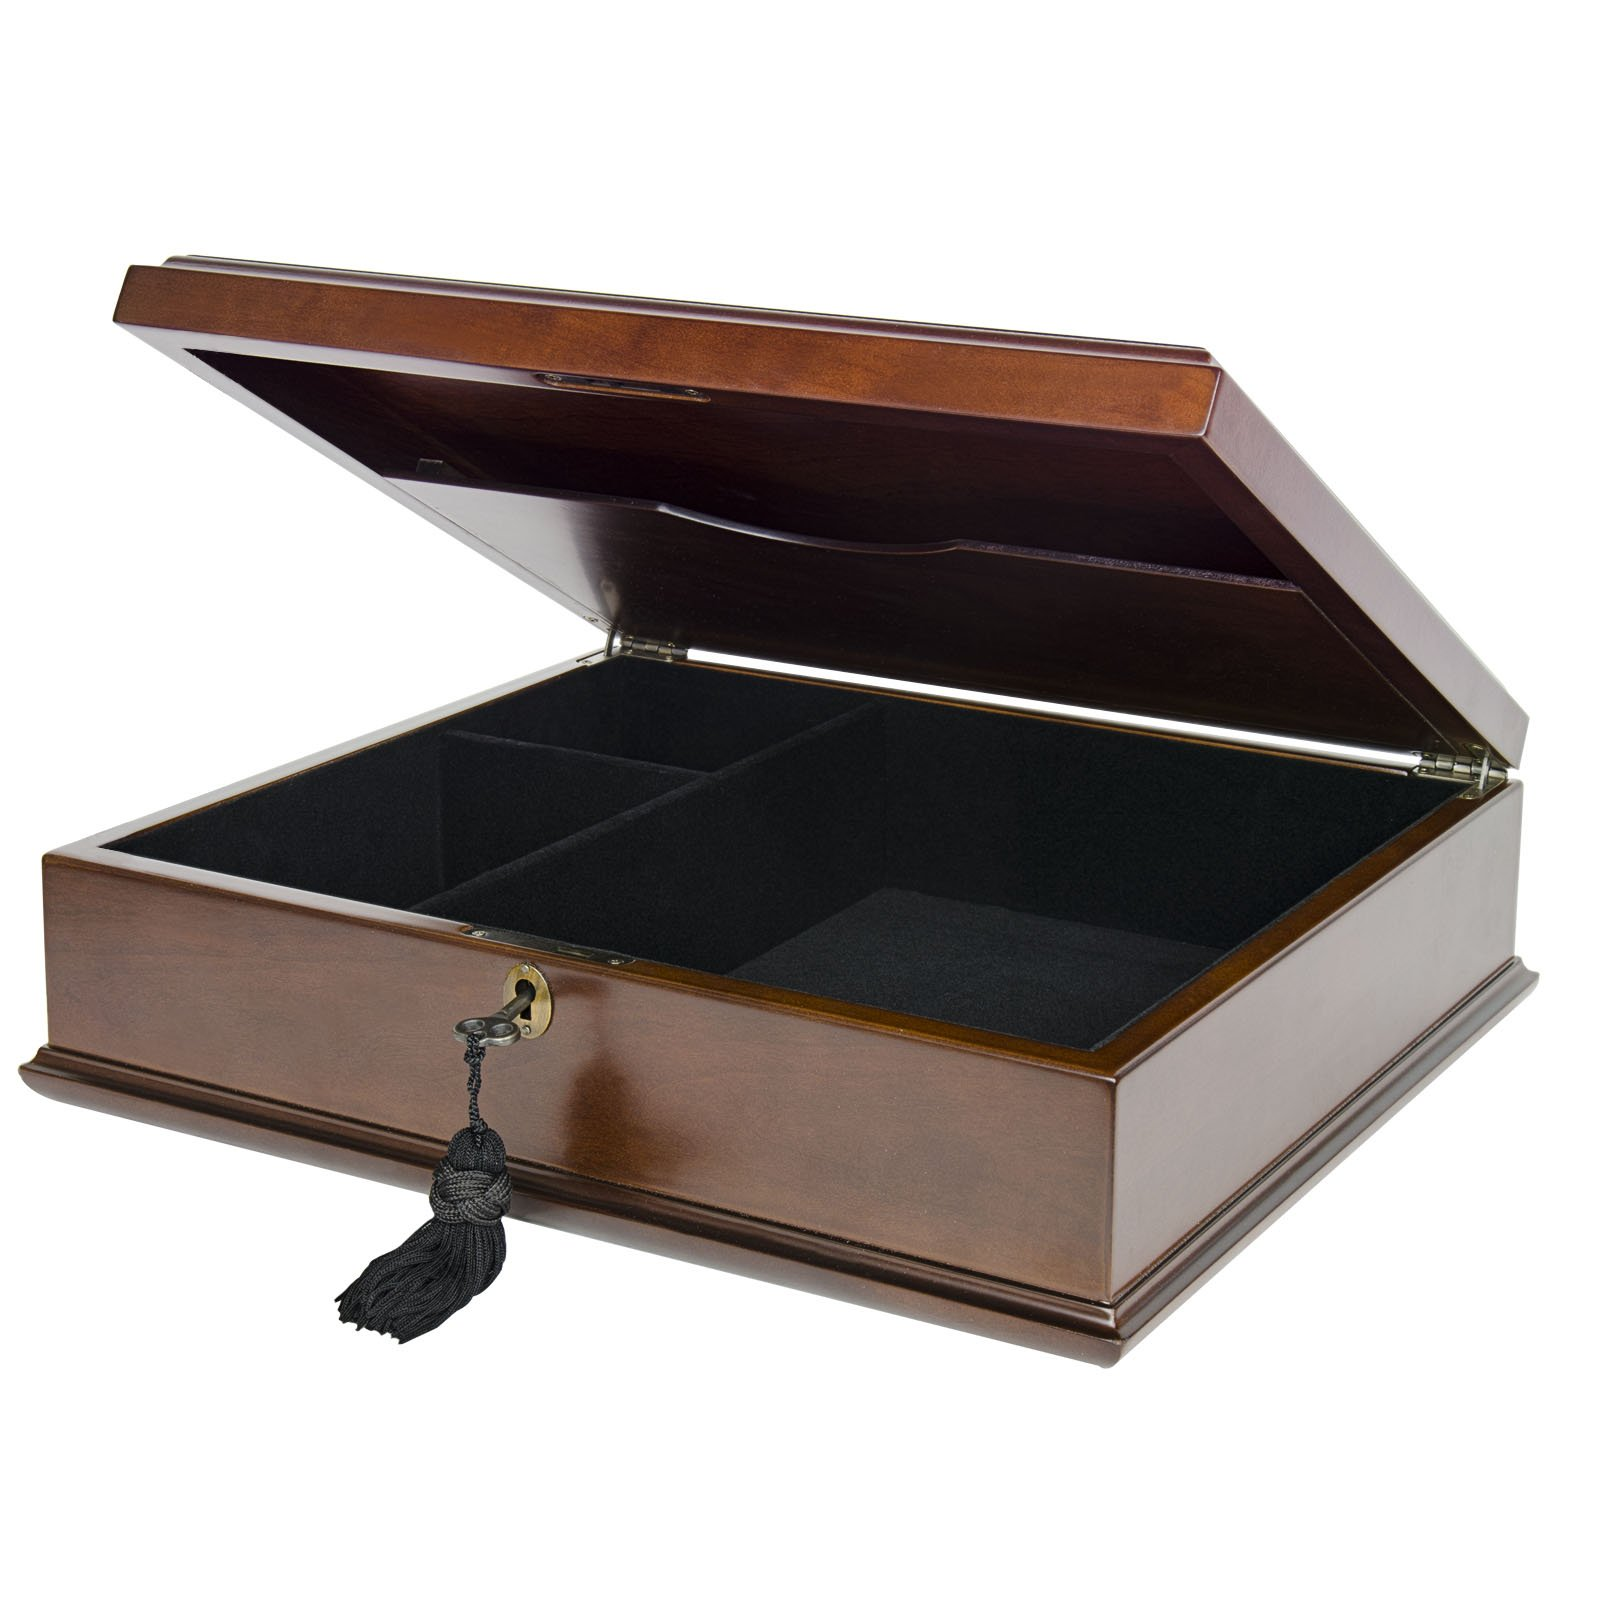 Large Romeo Memory Box Organizer Mahogany Wood Finish for Photo Album CD DVD USB & other Valuables Size 14 x 12 x 5 Inches